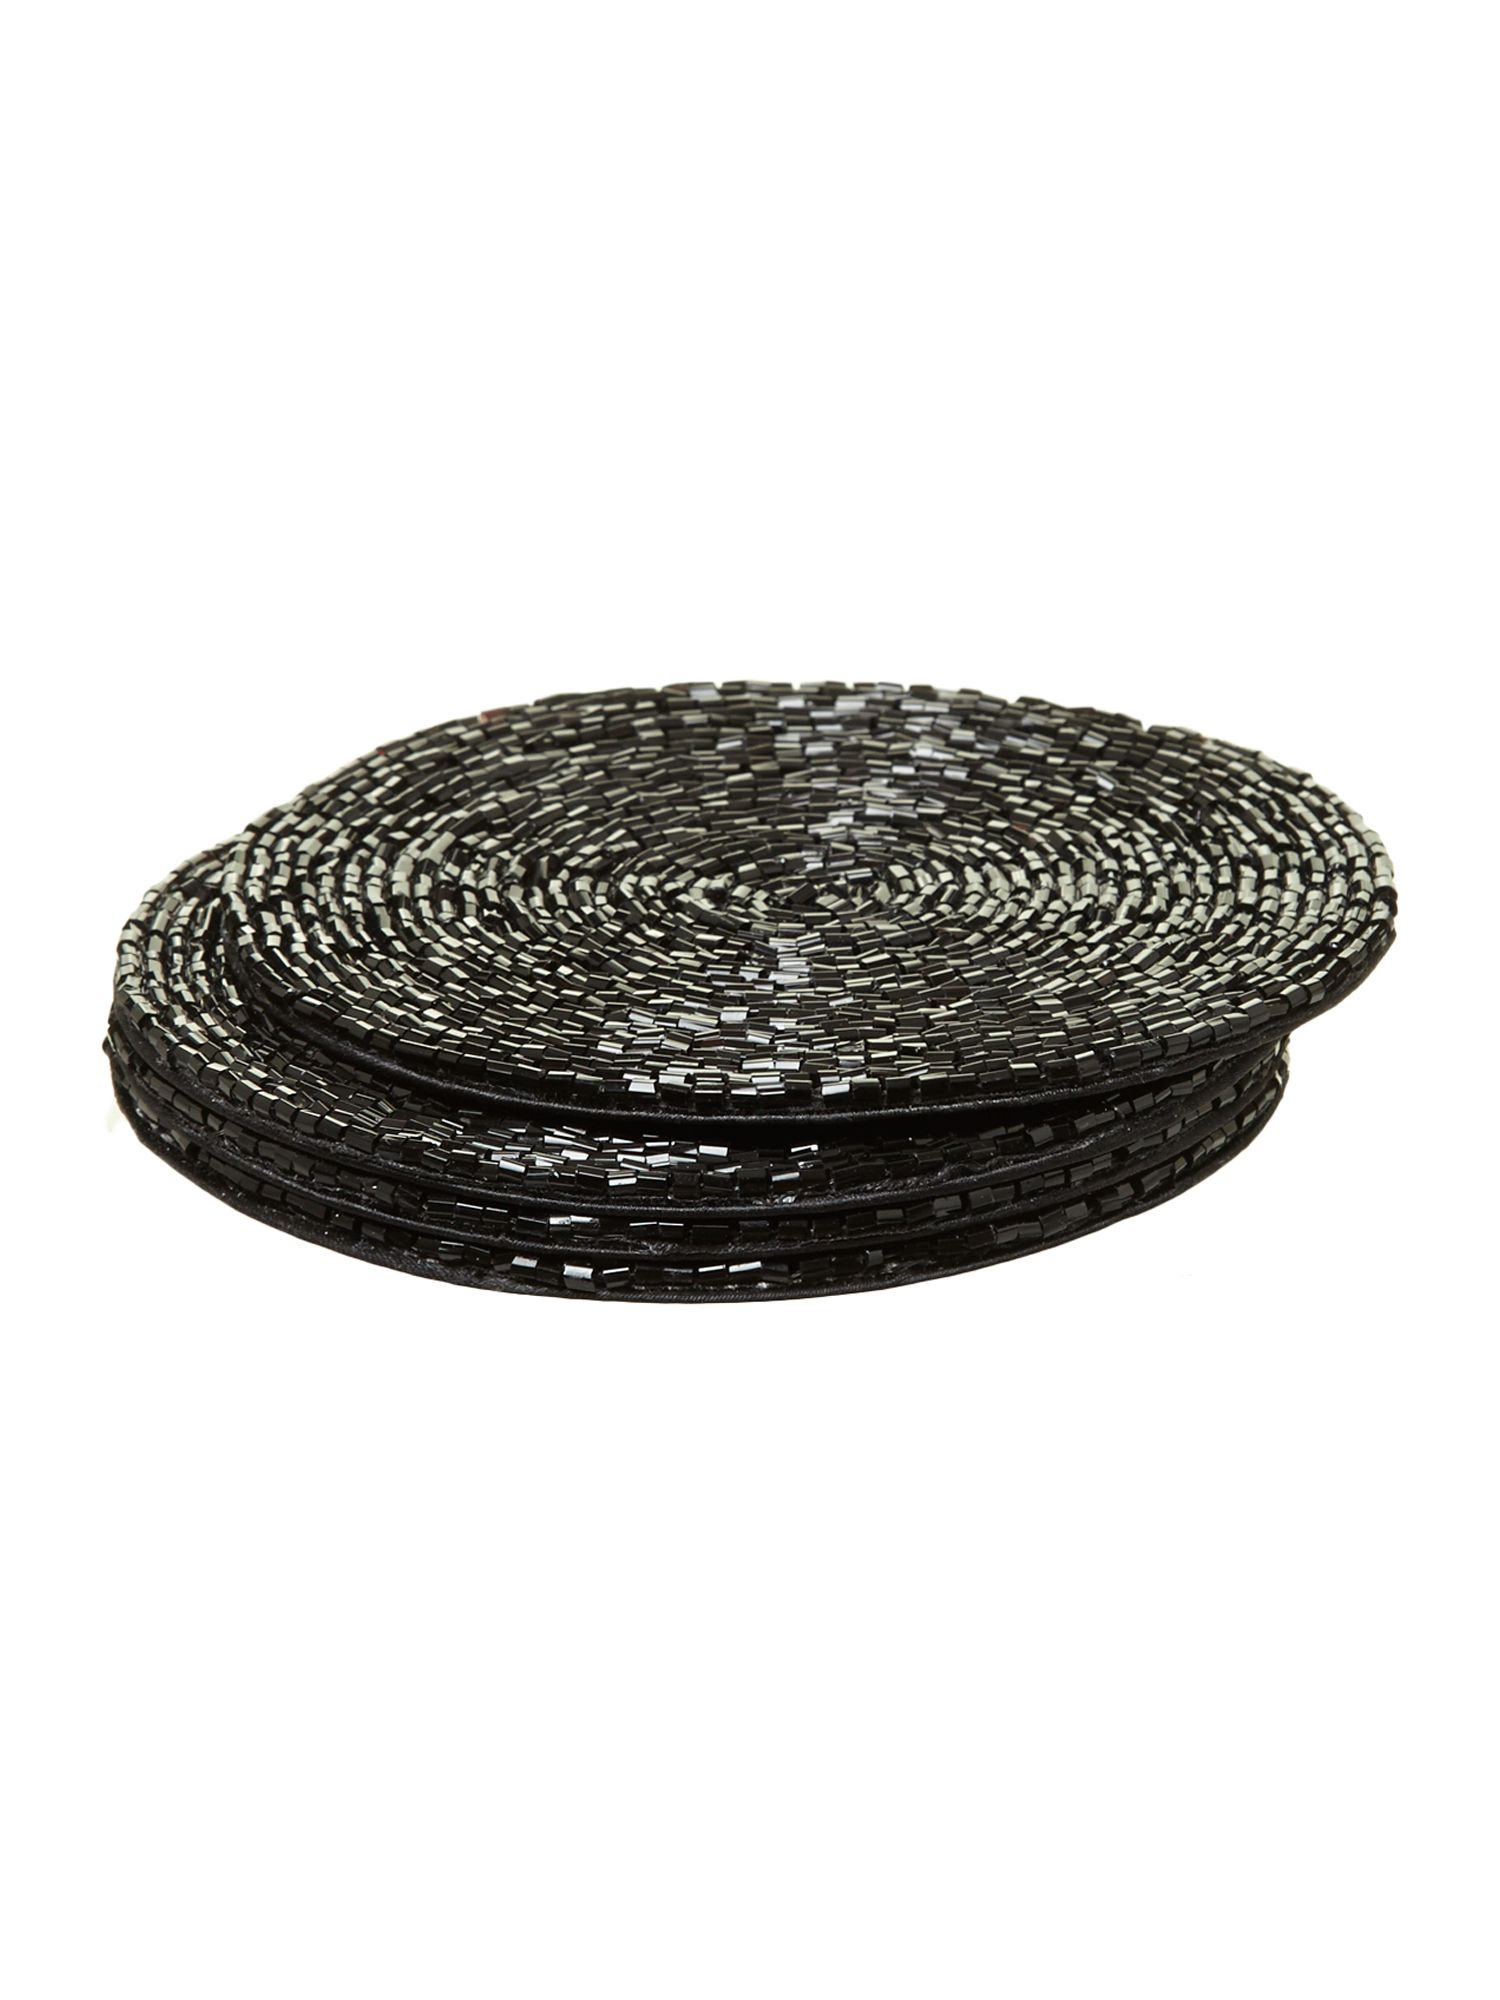 Black bugle bead coaster set 4